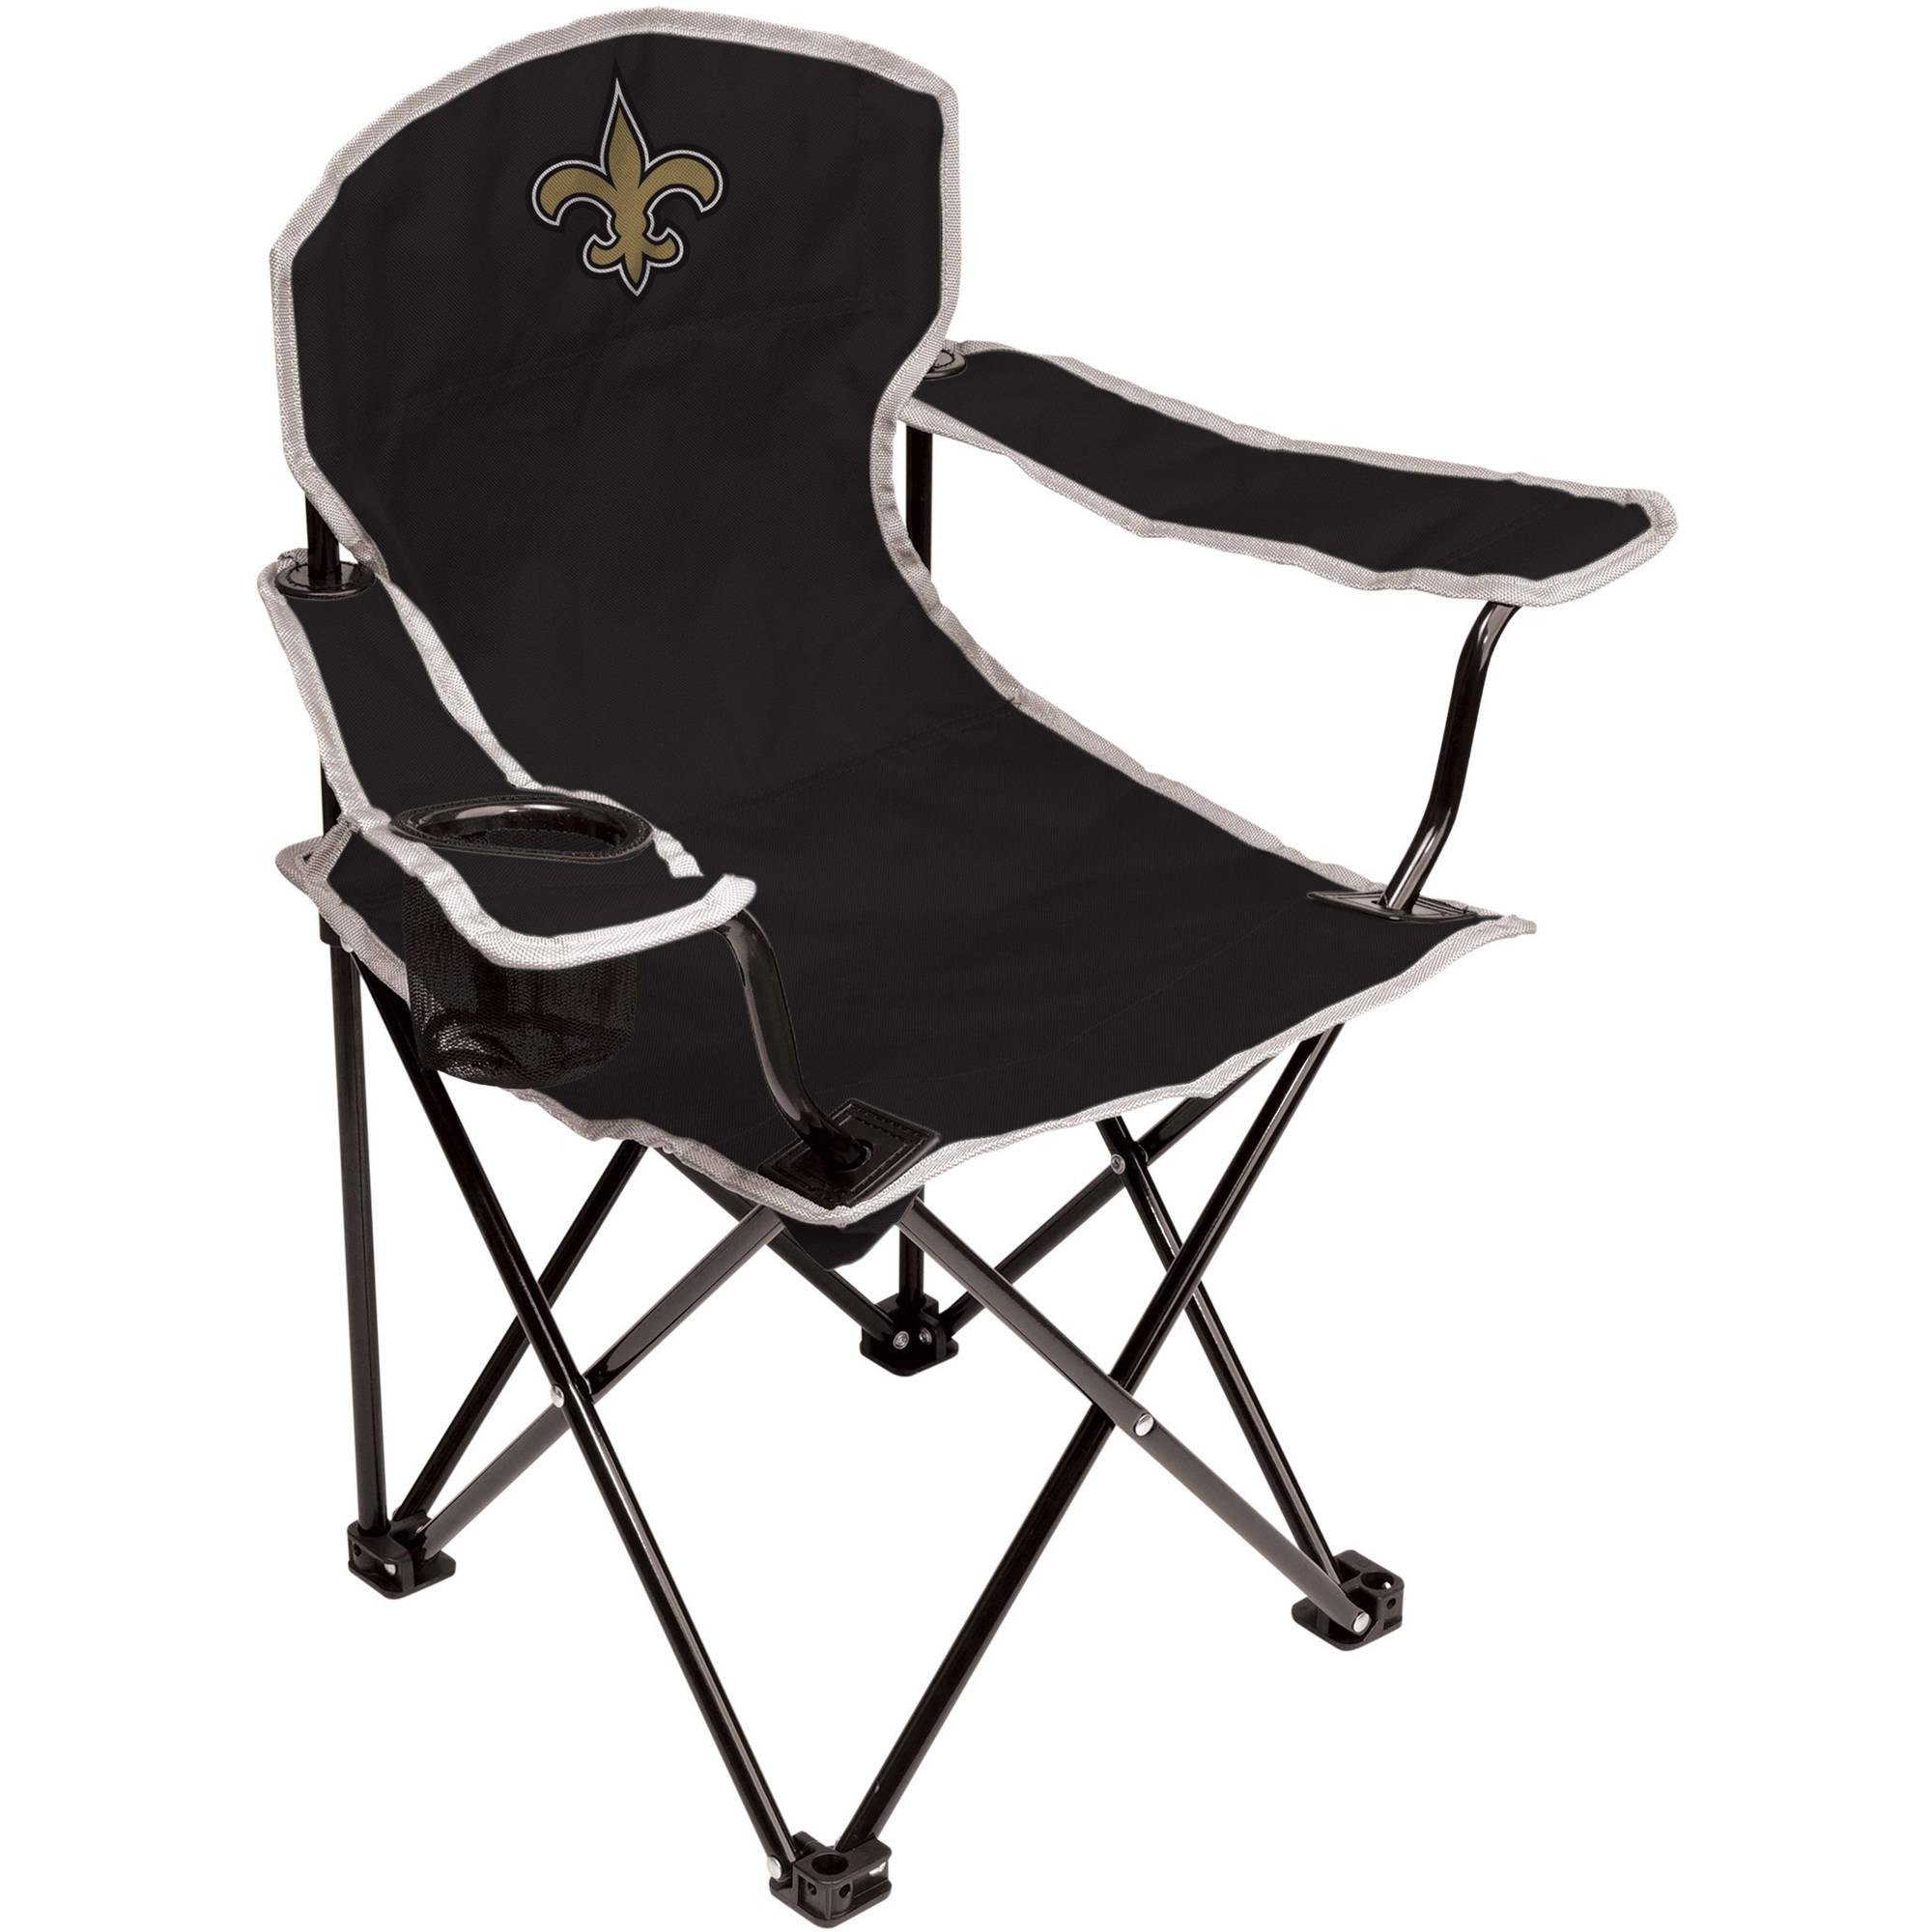 Charmant Coleman NFL New Orleans Saints Youth Size Tailgate Chair